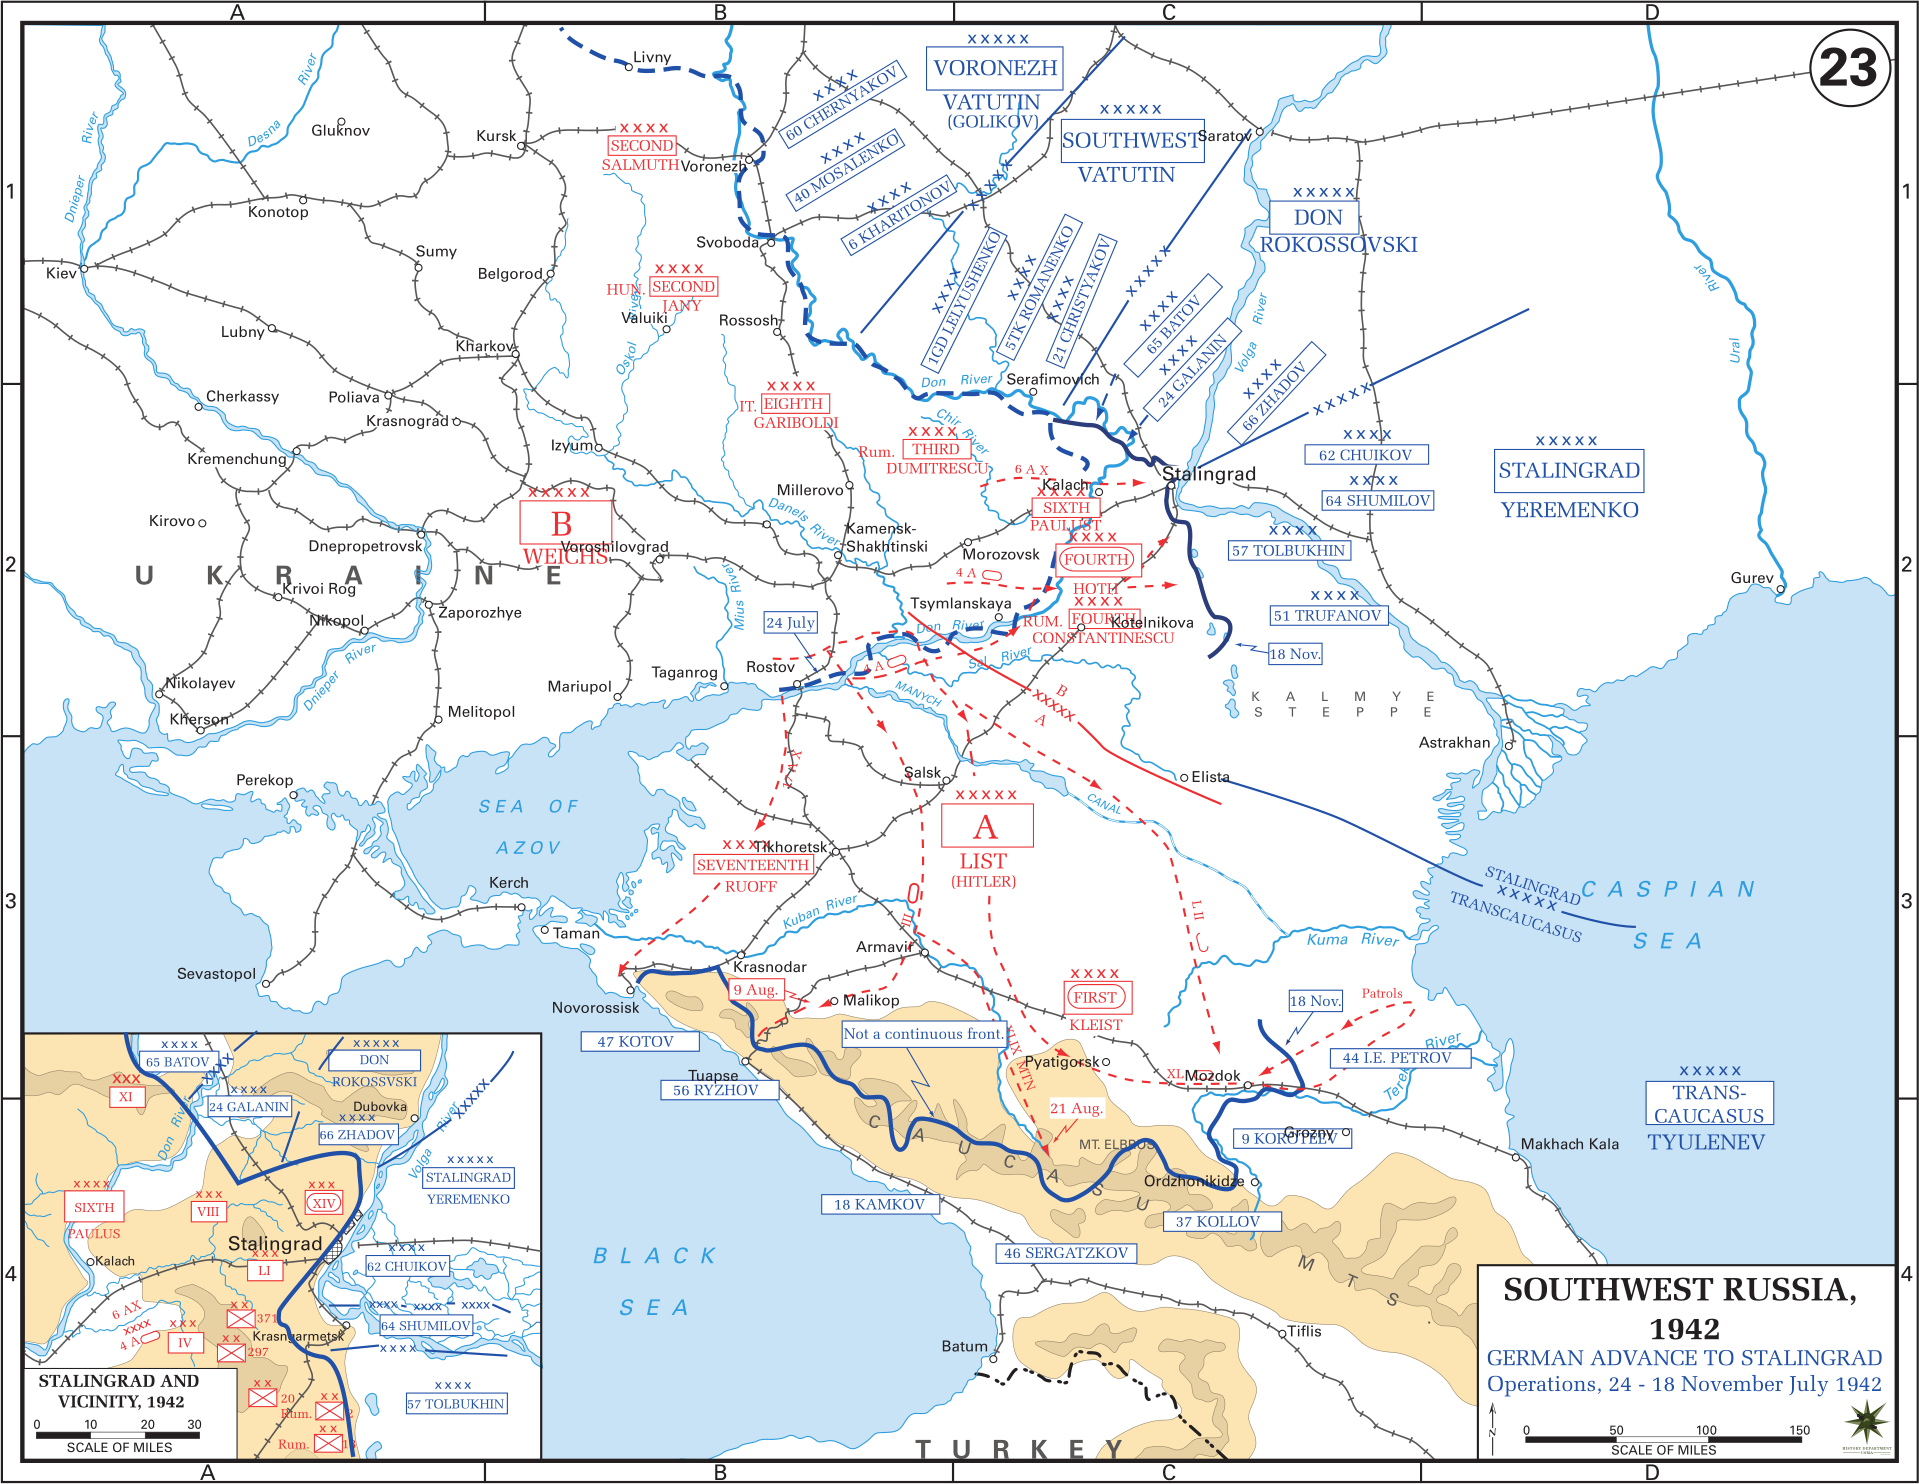 Eastern front maps of world war ii inflab medium german advance to stalingrad 24 july 18 november 1942 gumiabroncs Image collections